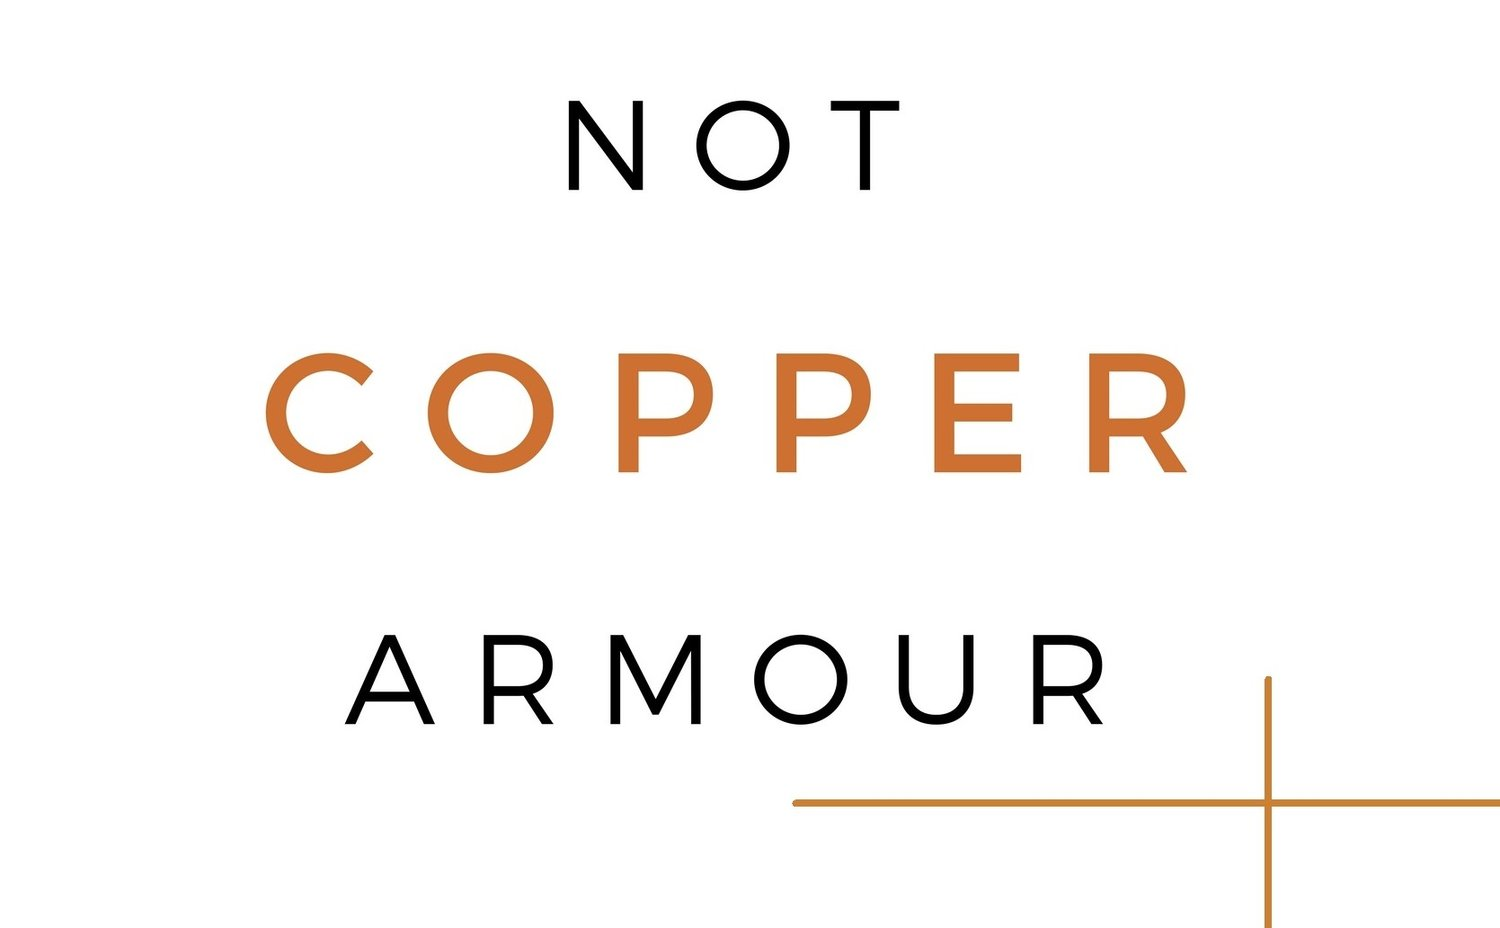 Not Copper Armour